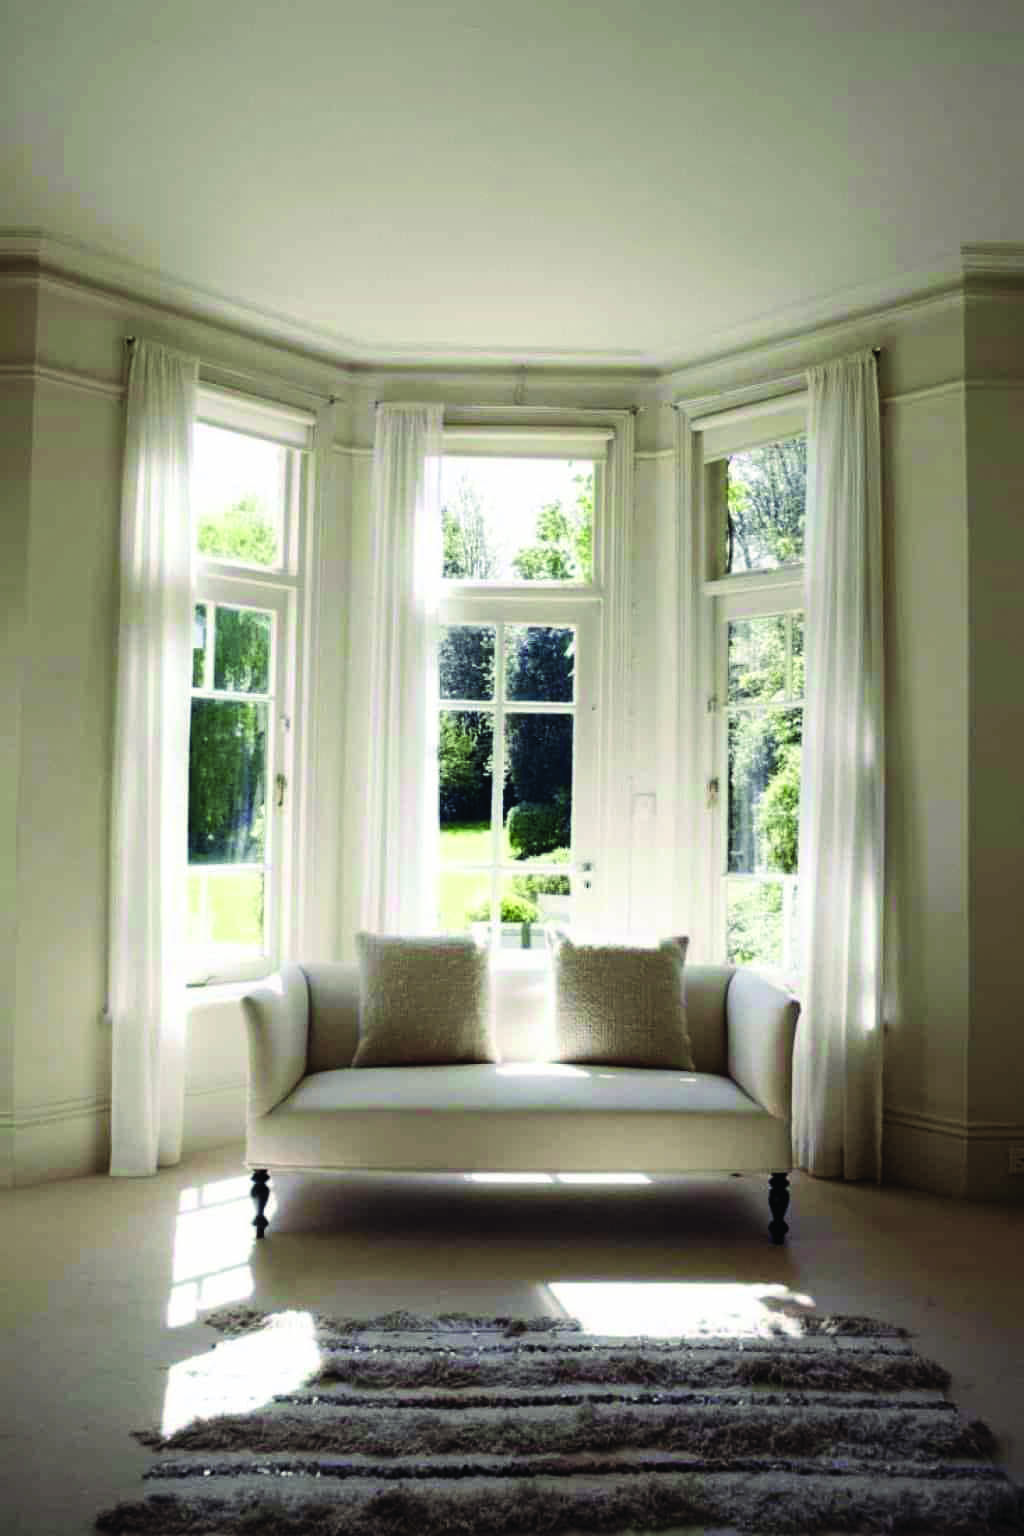 Top Bay Window Seat How To Build For Your Home Bay Window Living Room Kitchen Bay Window Bay Window Decor